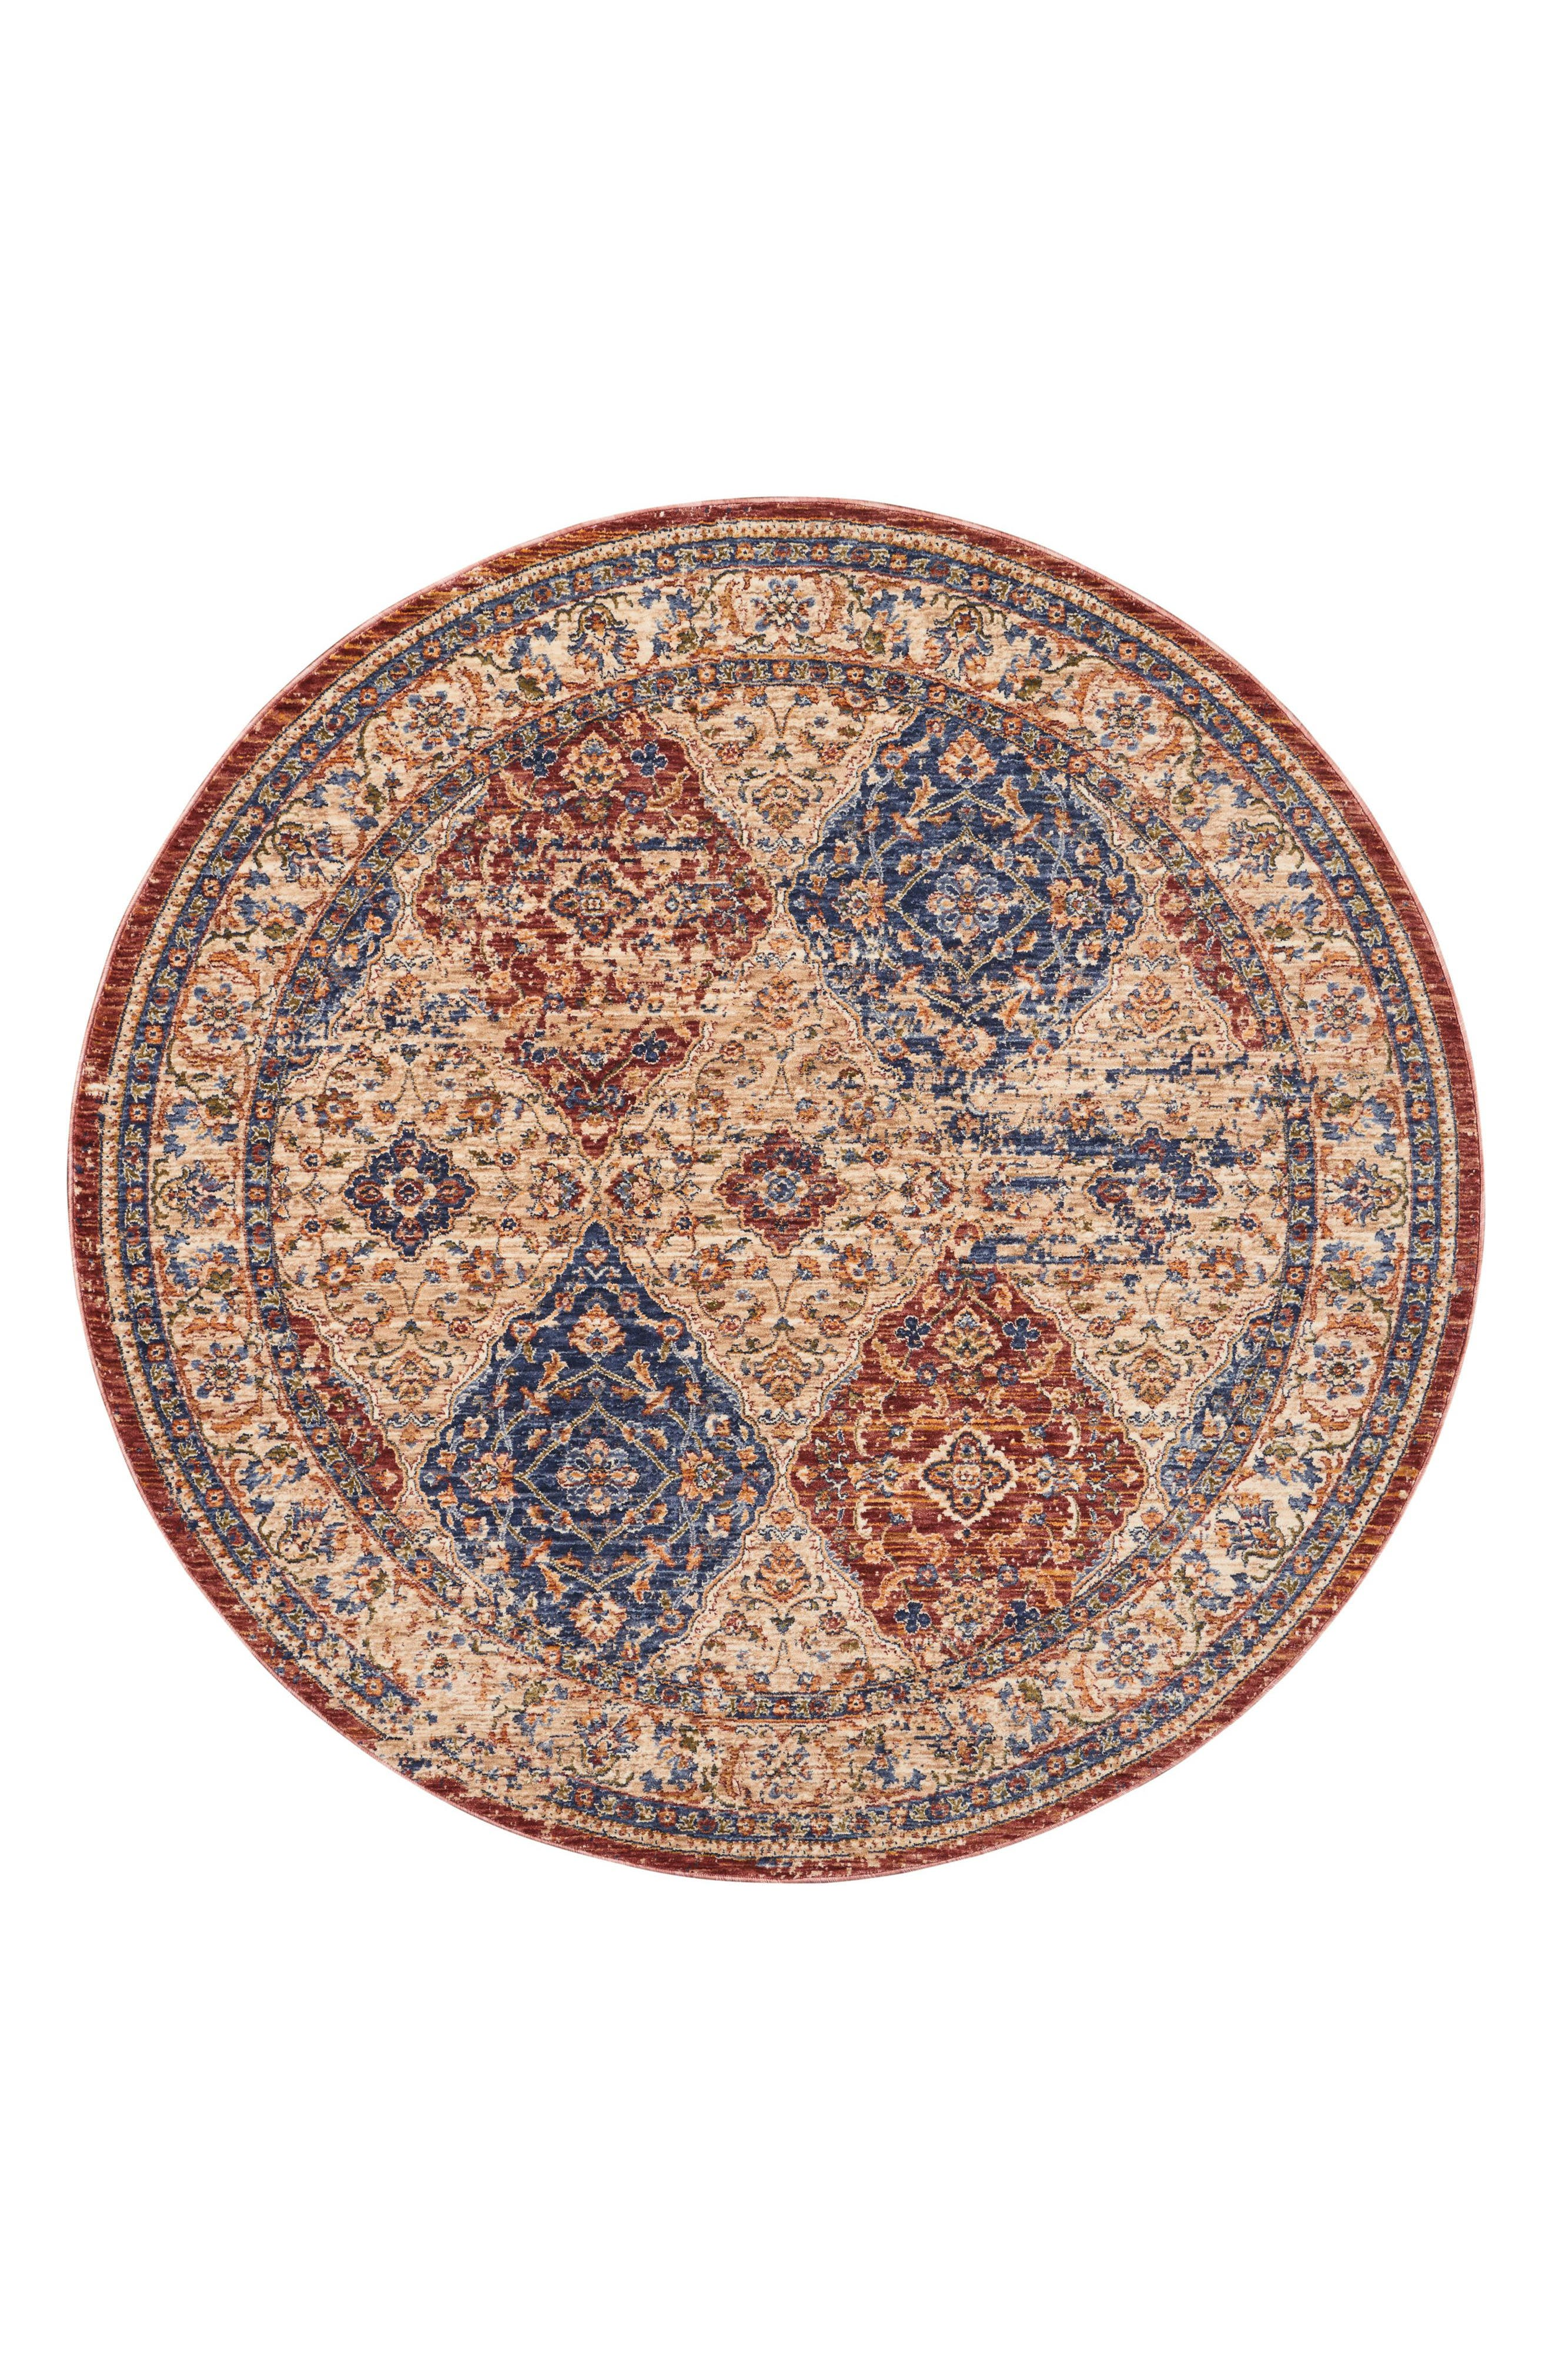 Vivid Ivory Round Area Rug,                             Main thumbnail 1, color,                             Multicolor